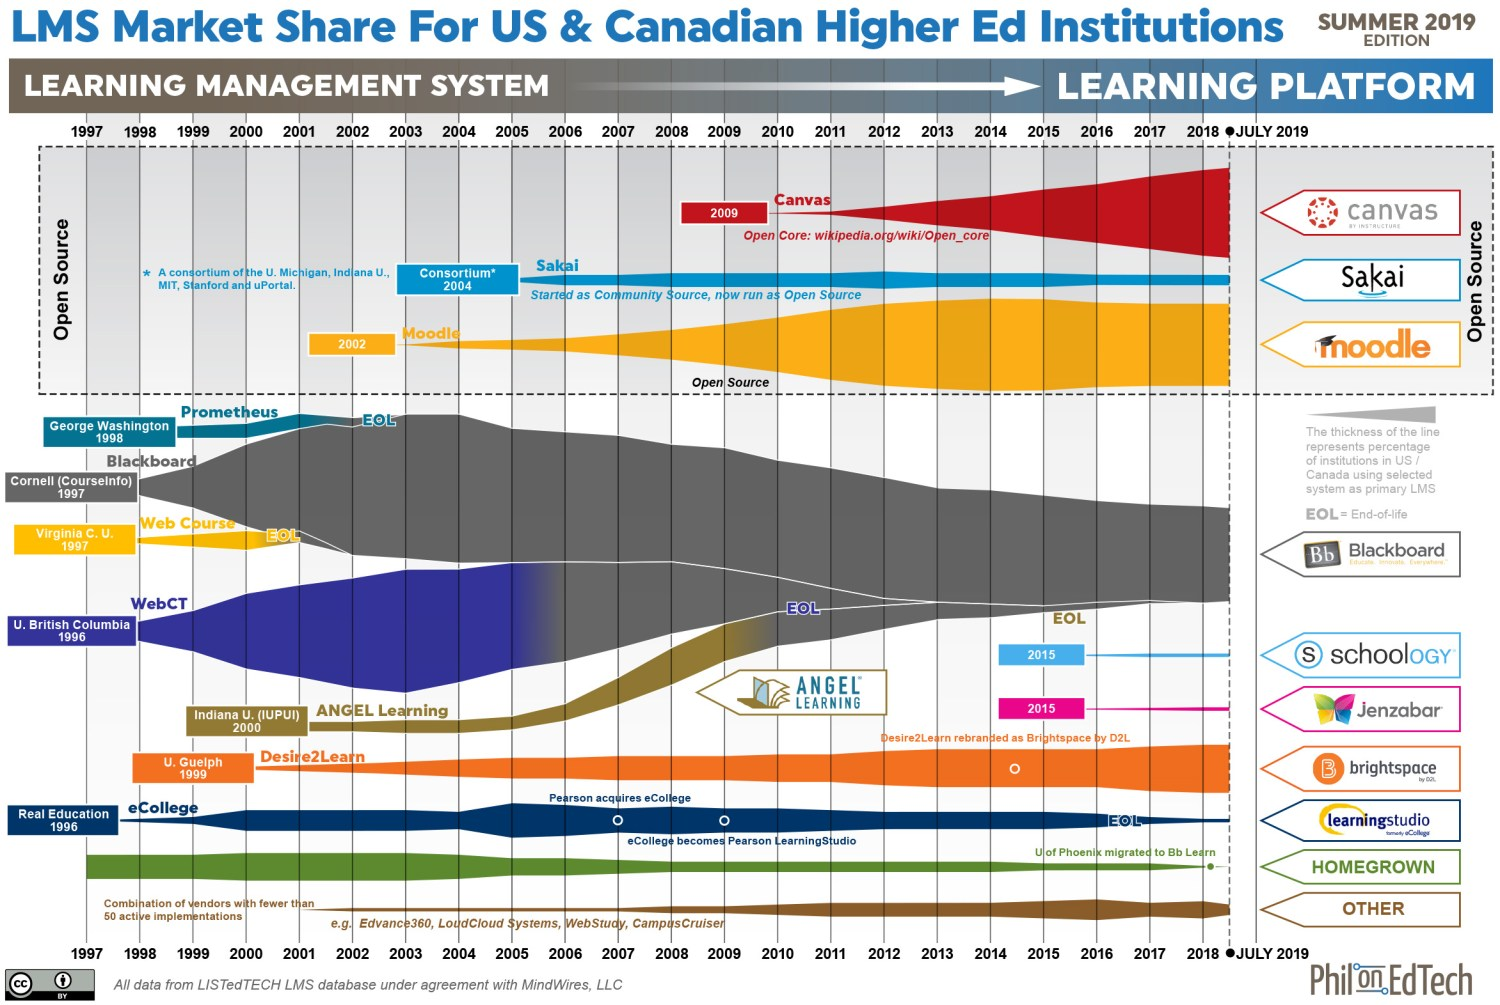 LMS market graphic for US & Canada higher education, showing market share bands from 1997 - 2019, with notes on primary vendors and corporate acquisitions.